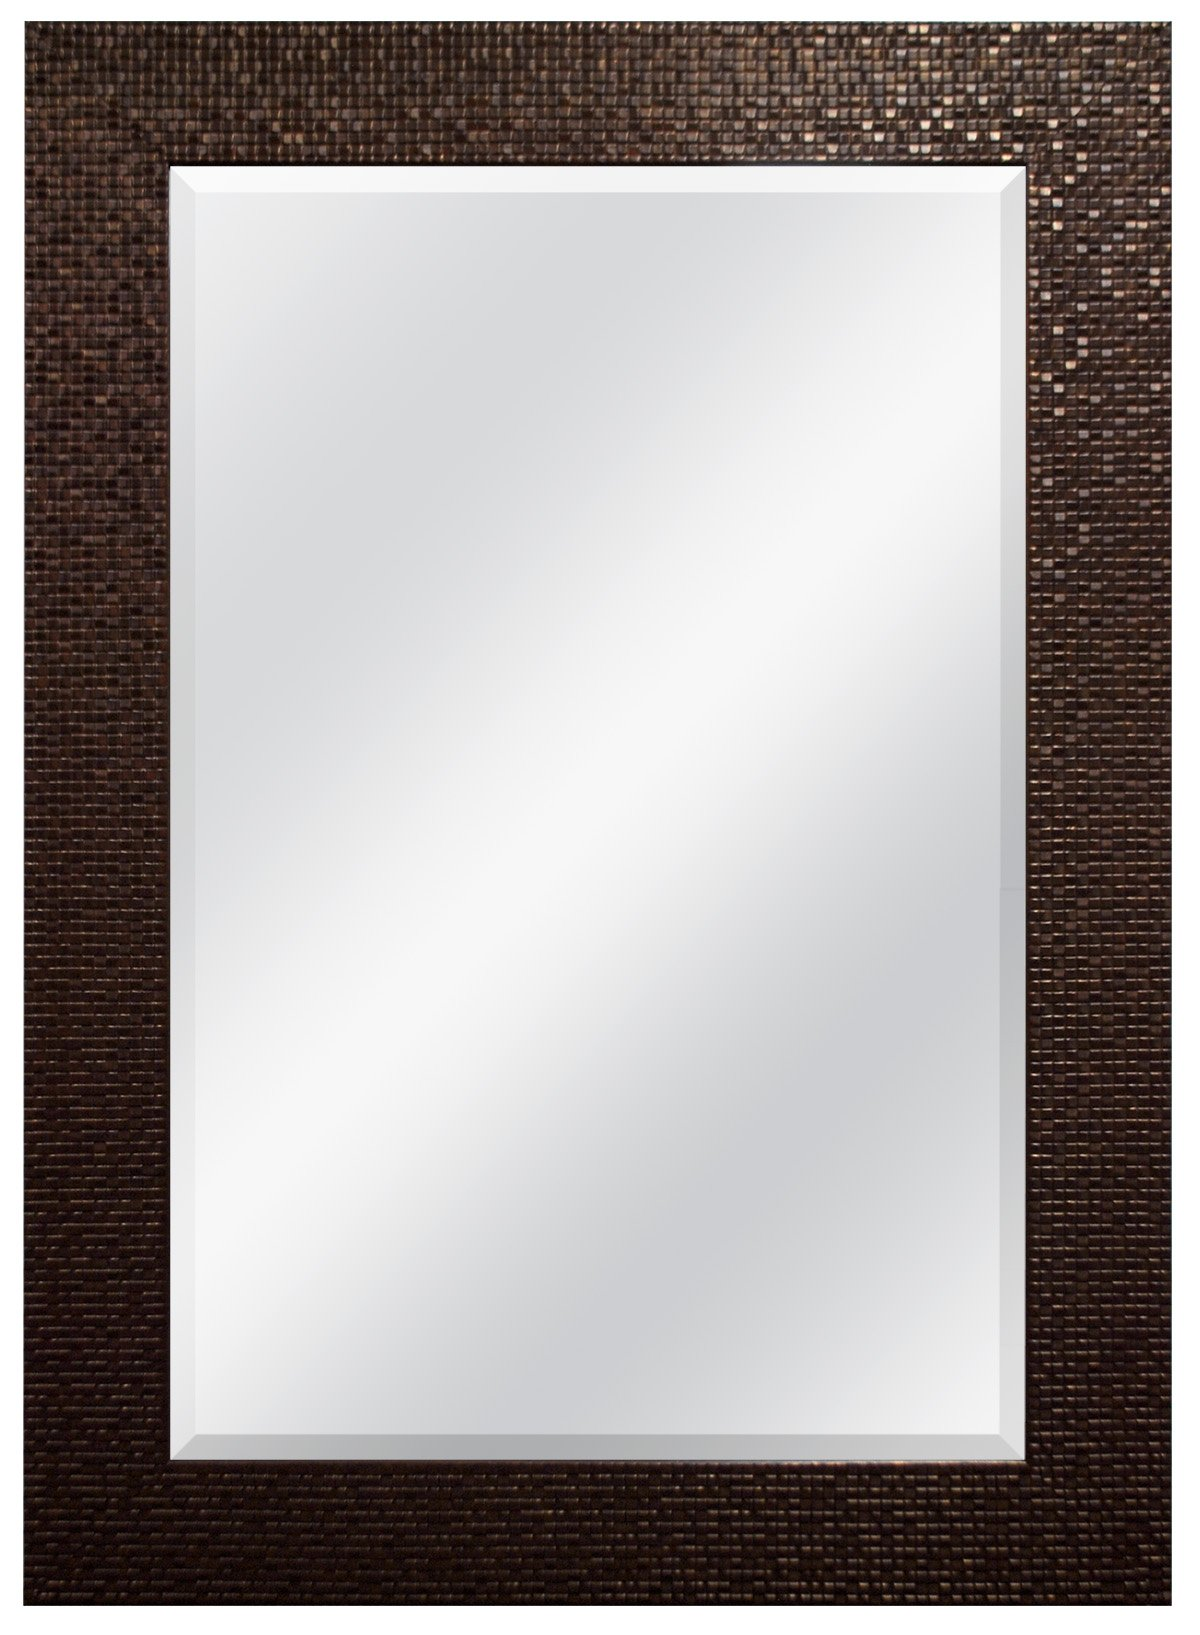 MCS 24x36 Inch Beveled Mirror, 32x44 Inch Overall Size, Bronze (47703)